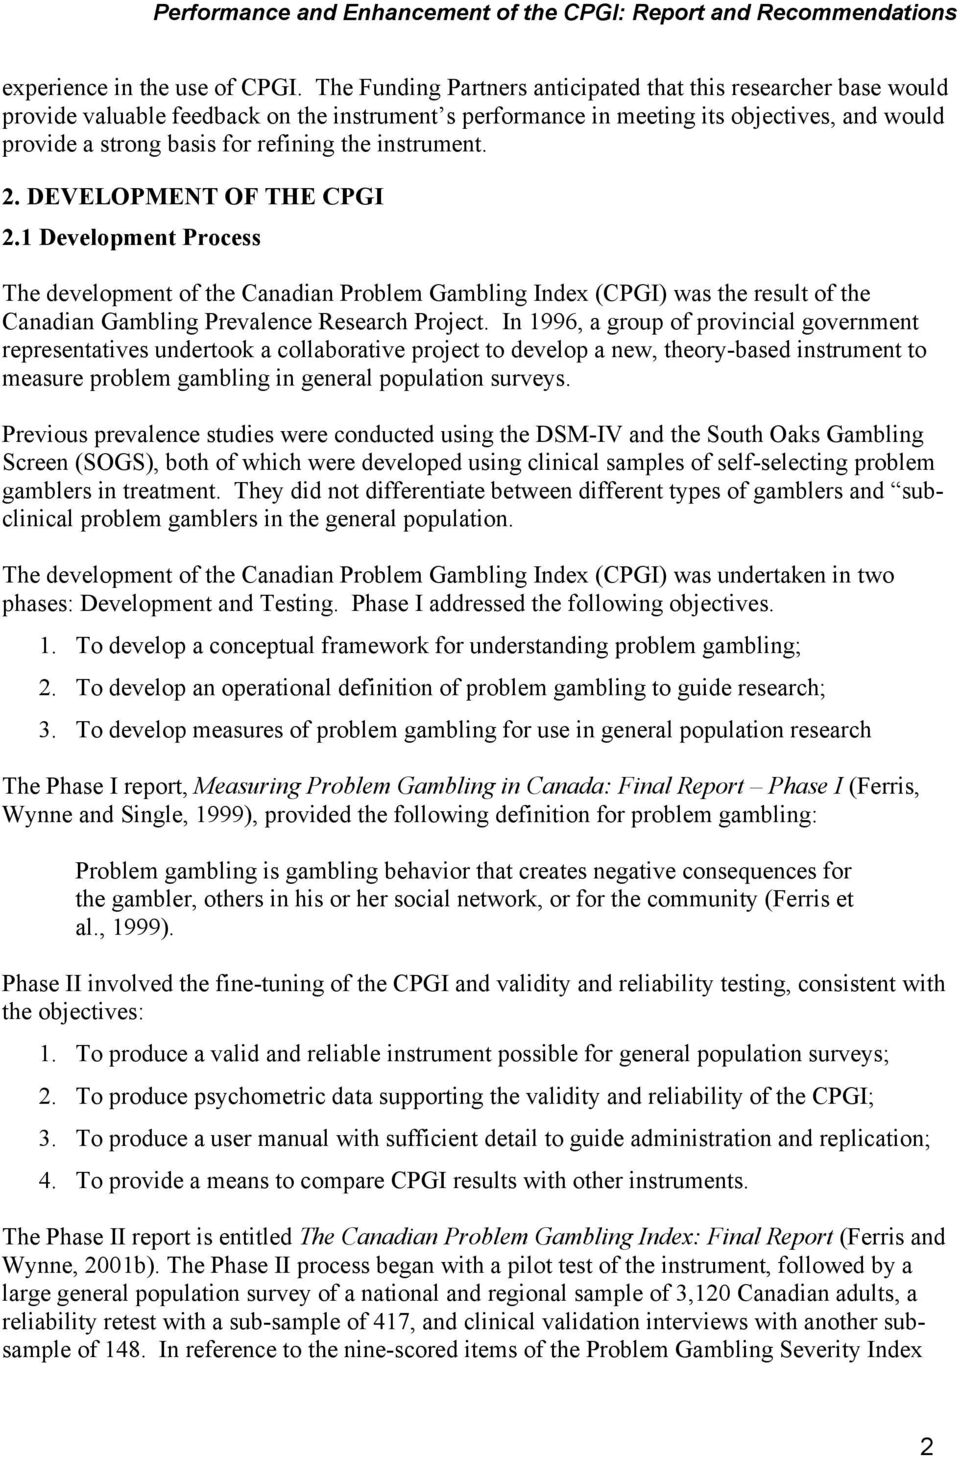 instrument. 2. DEVELOPMENT OF THE CPGI 2.1 Development Process The development of the Canadian Problem Gambling Index (CPGI) was the result of the Canadian Gambling Prevalence Research Project.